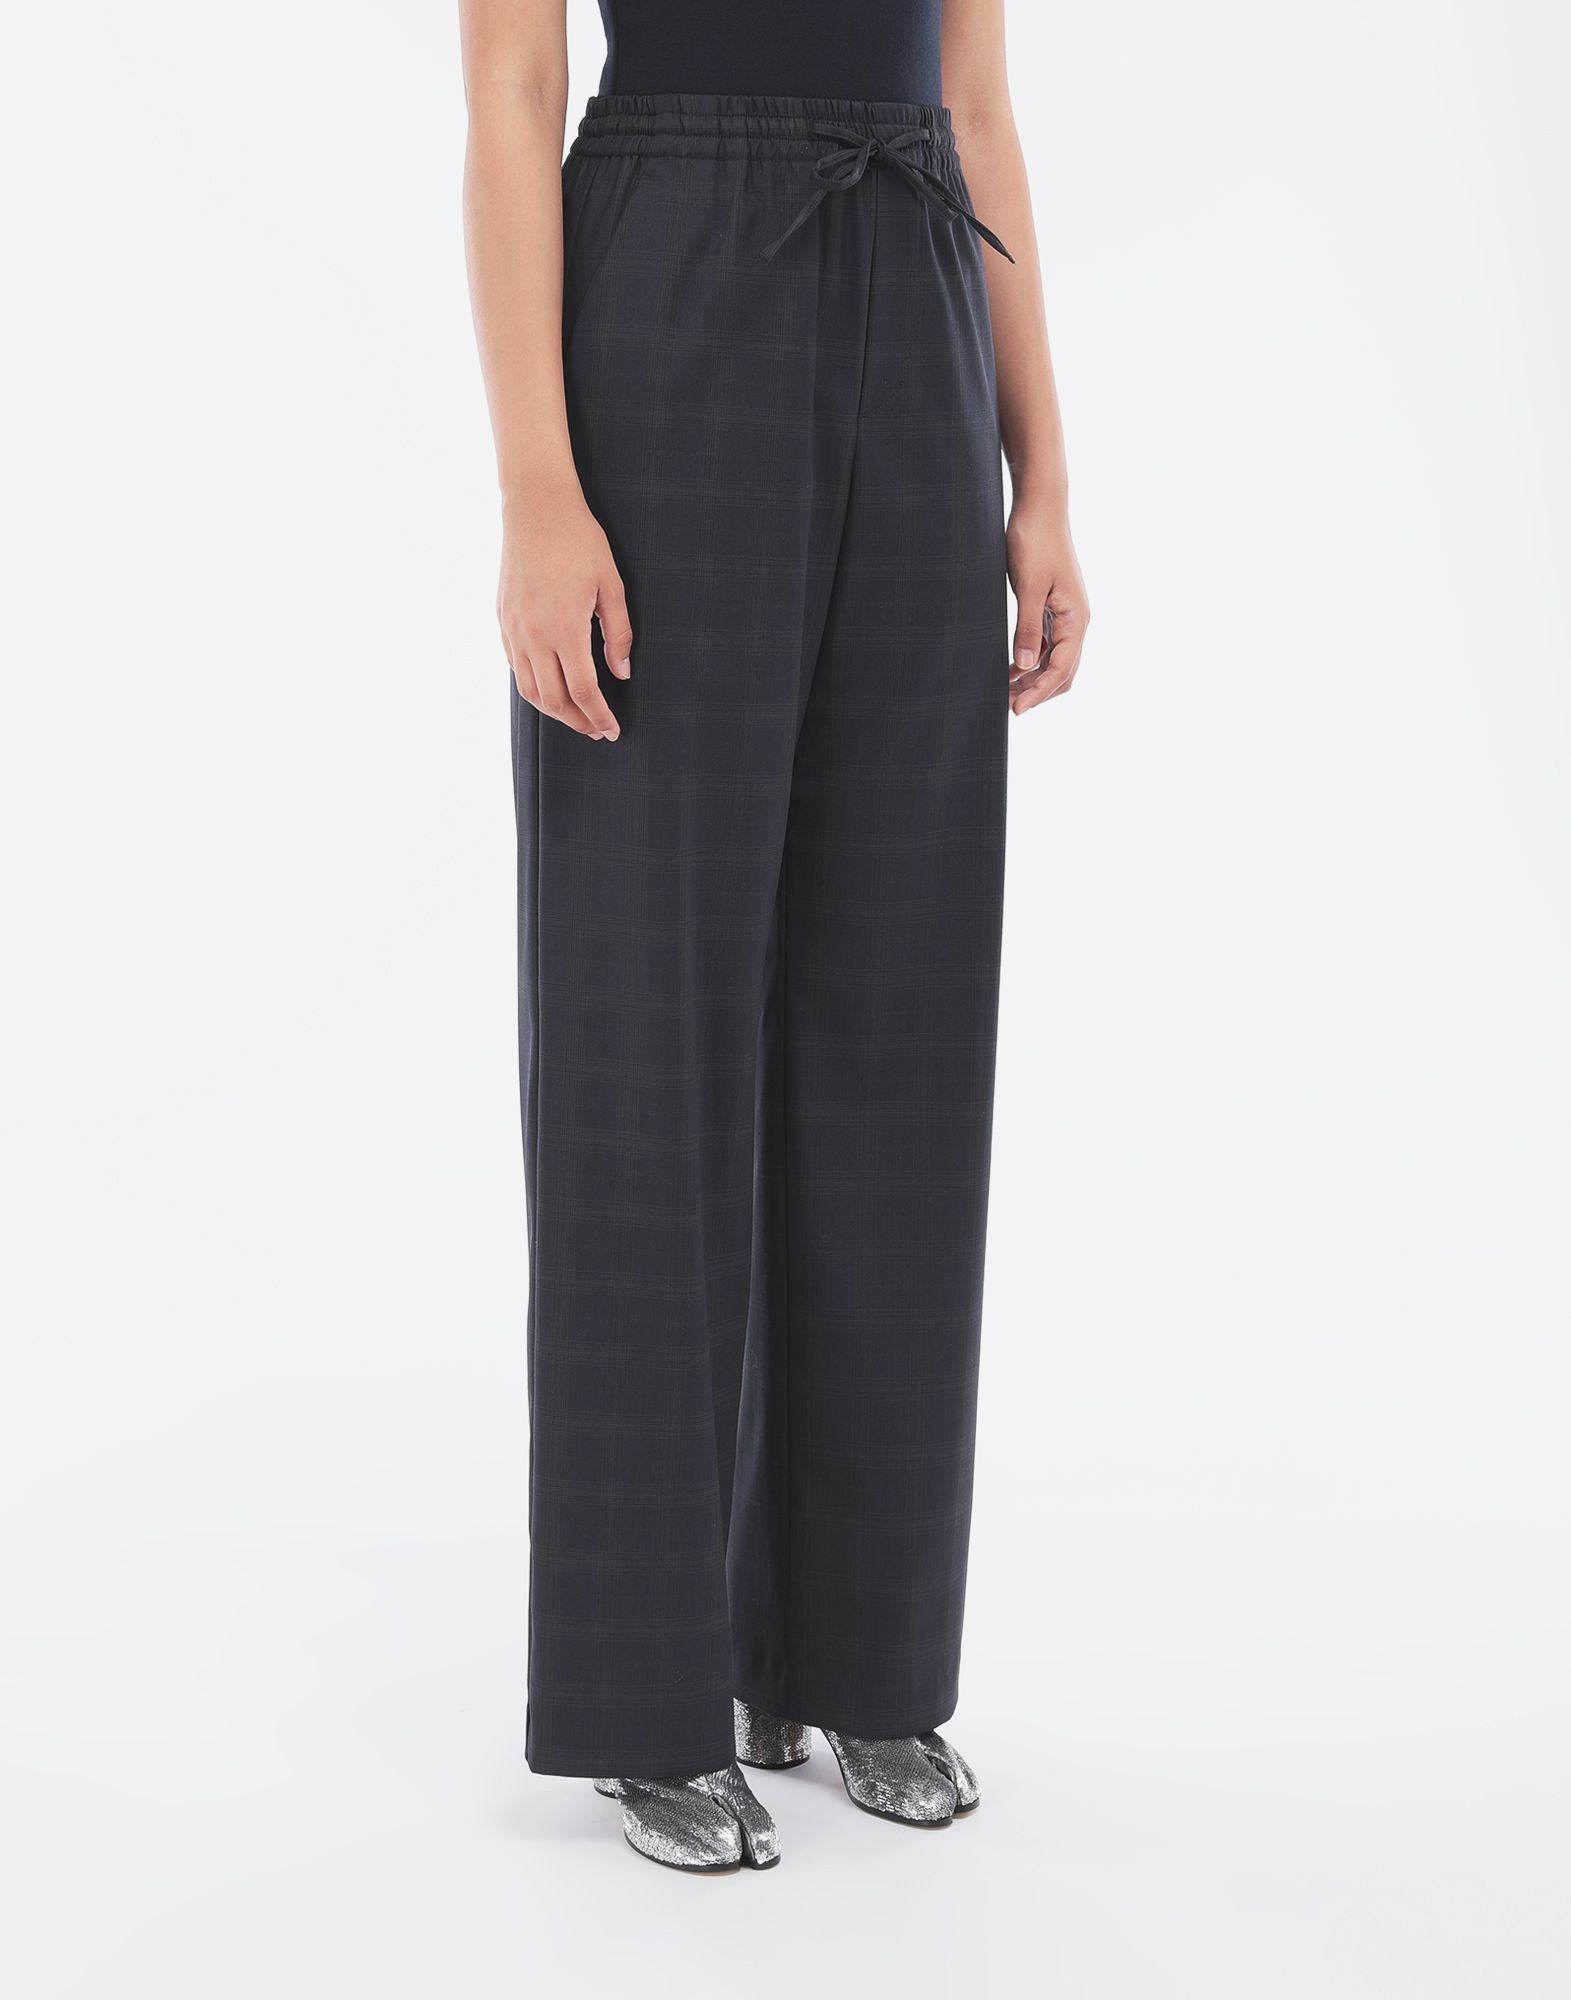 MAISON MARGIELA Check trousers Trousers Woman r